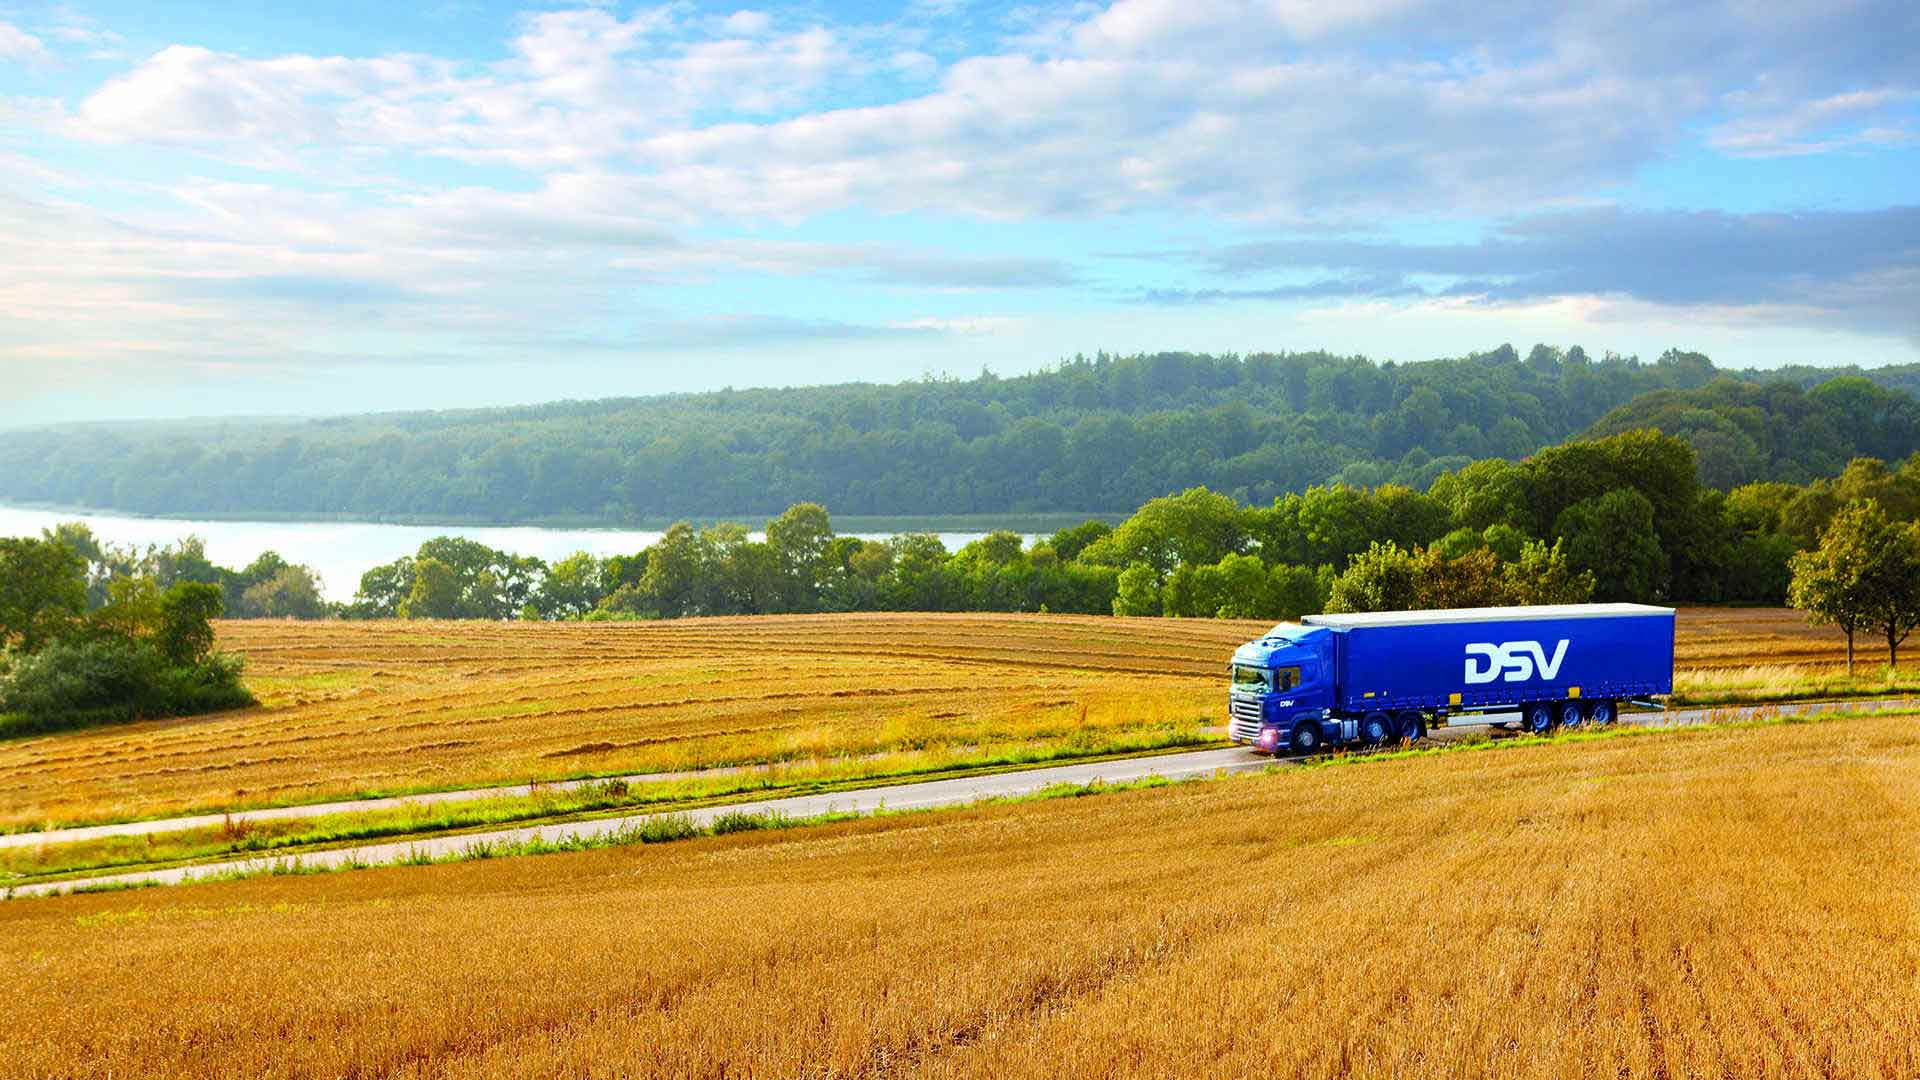 The fill rate of our trucks is maximised to reduce emissions